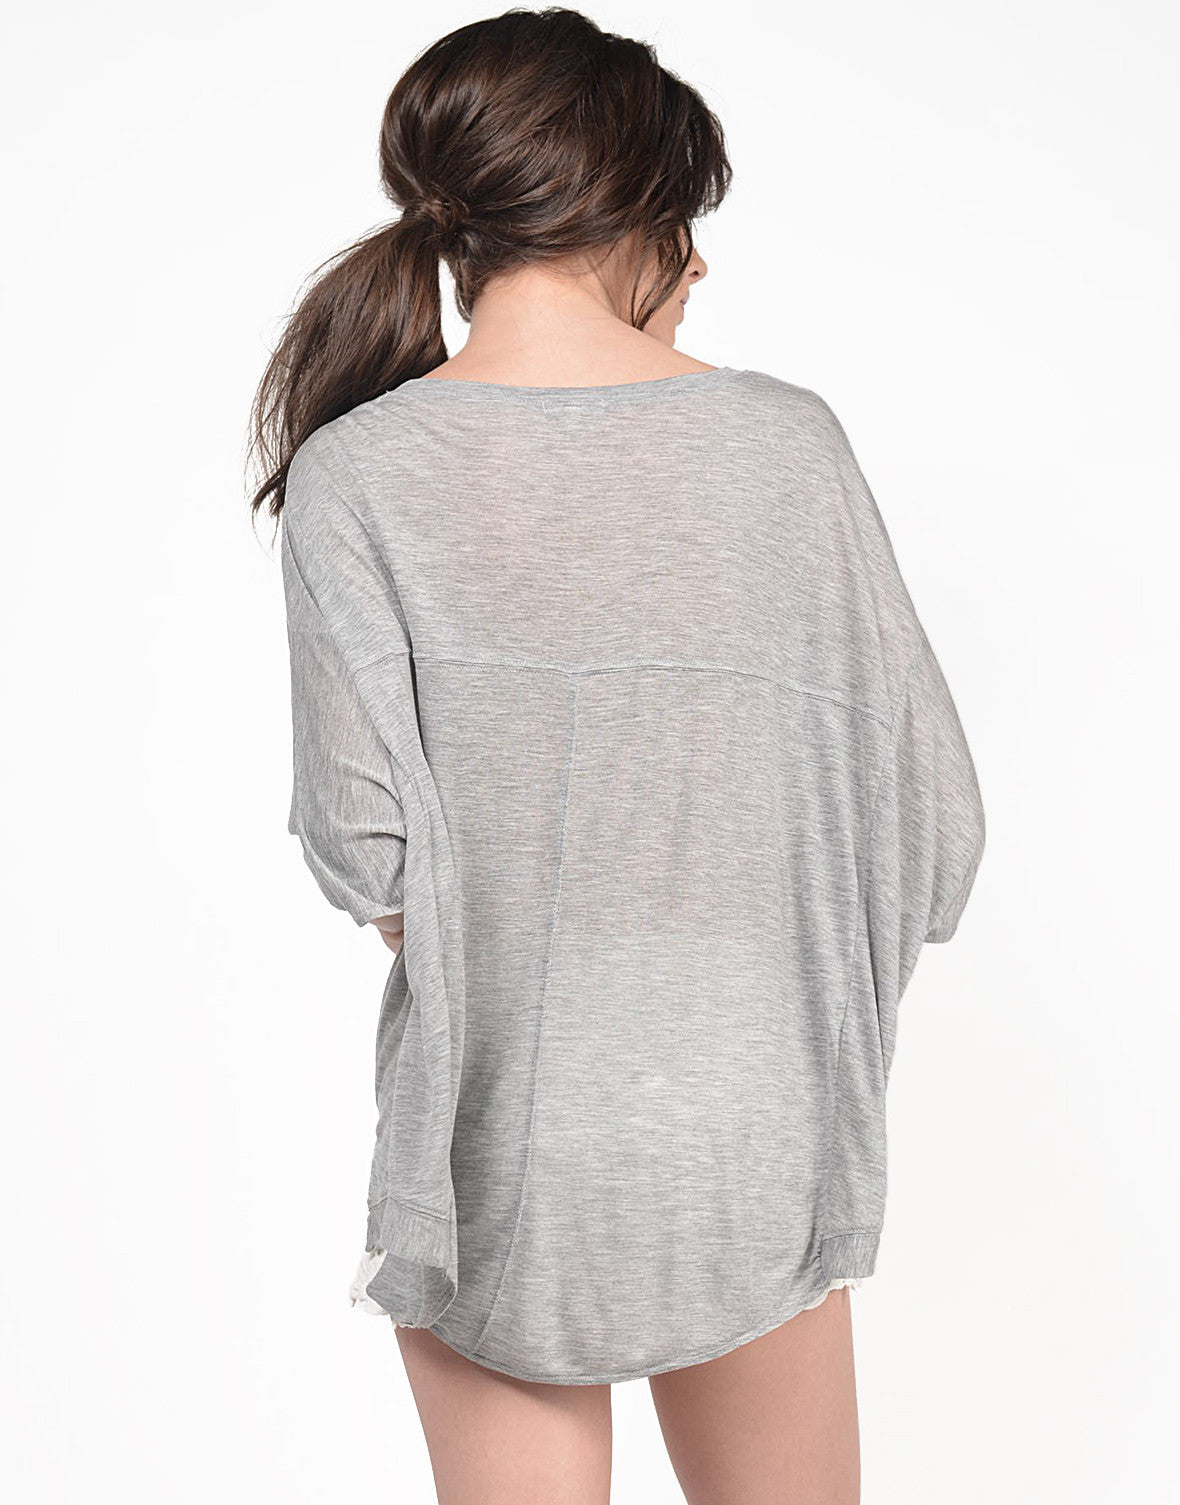 Back View of Hi-Low Soft Tee